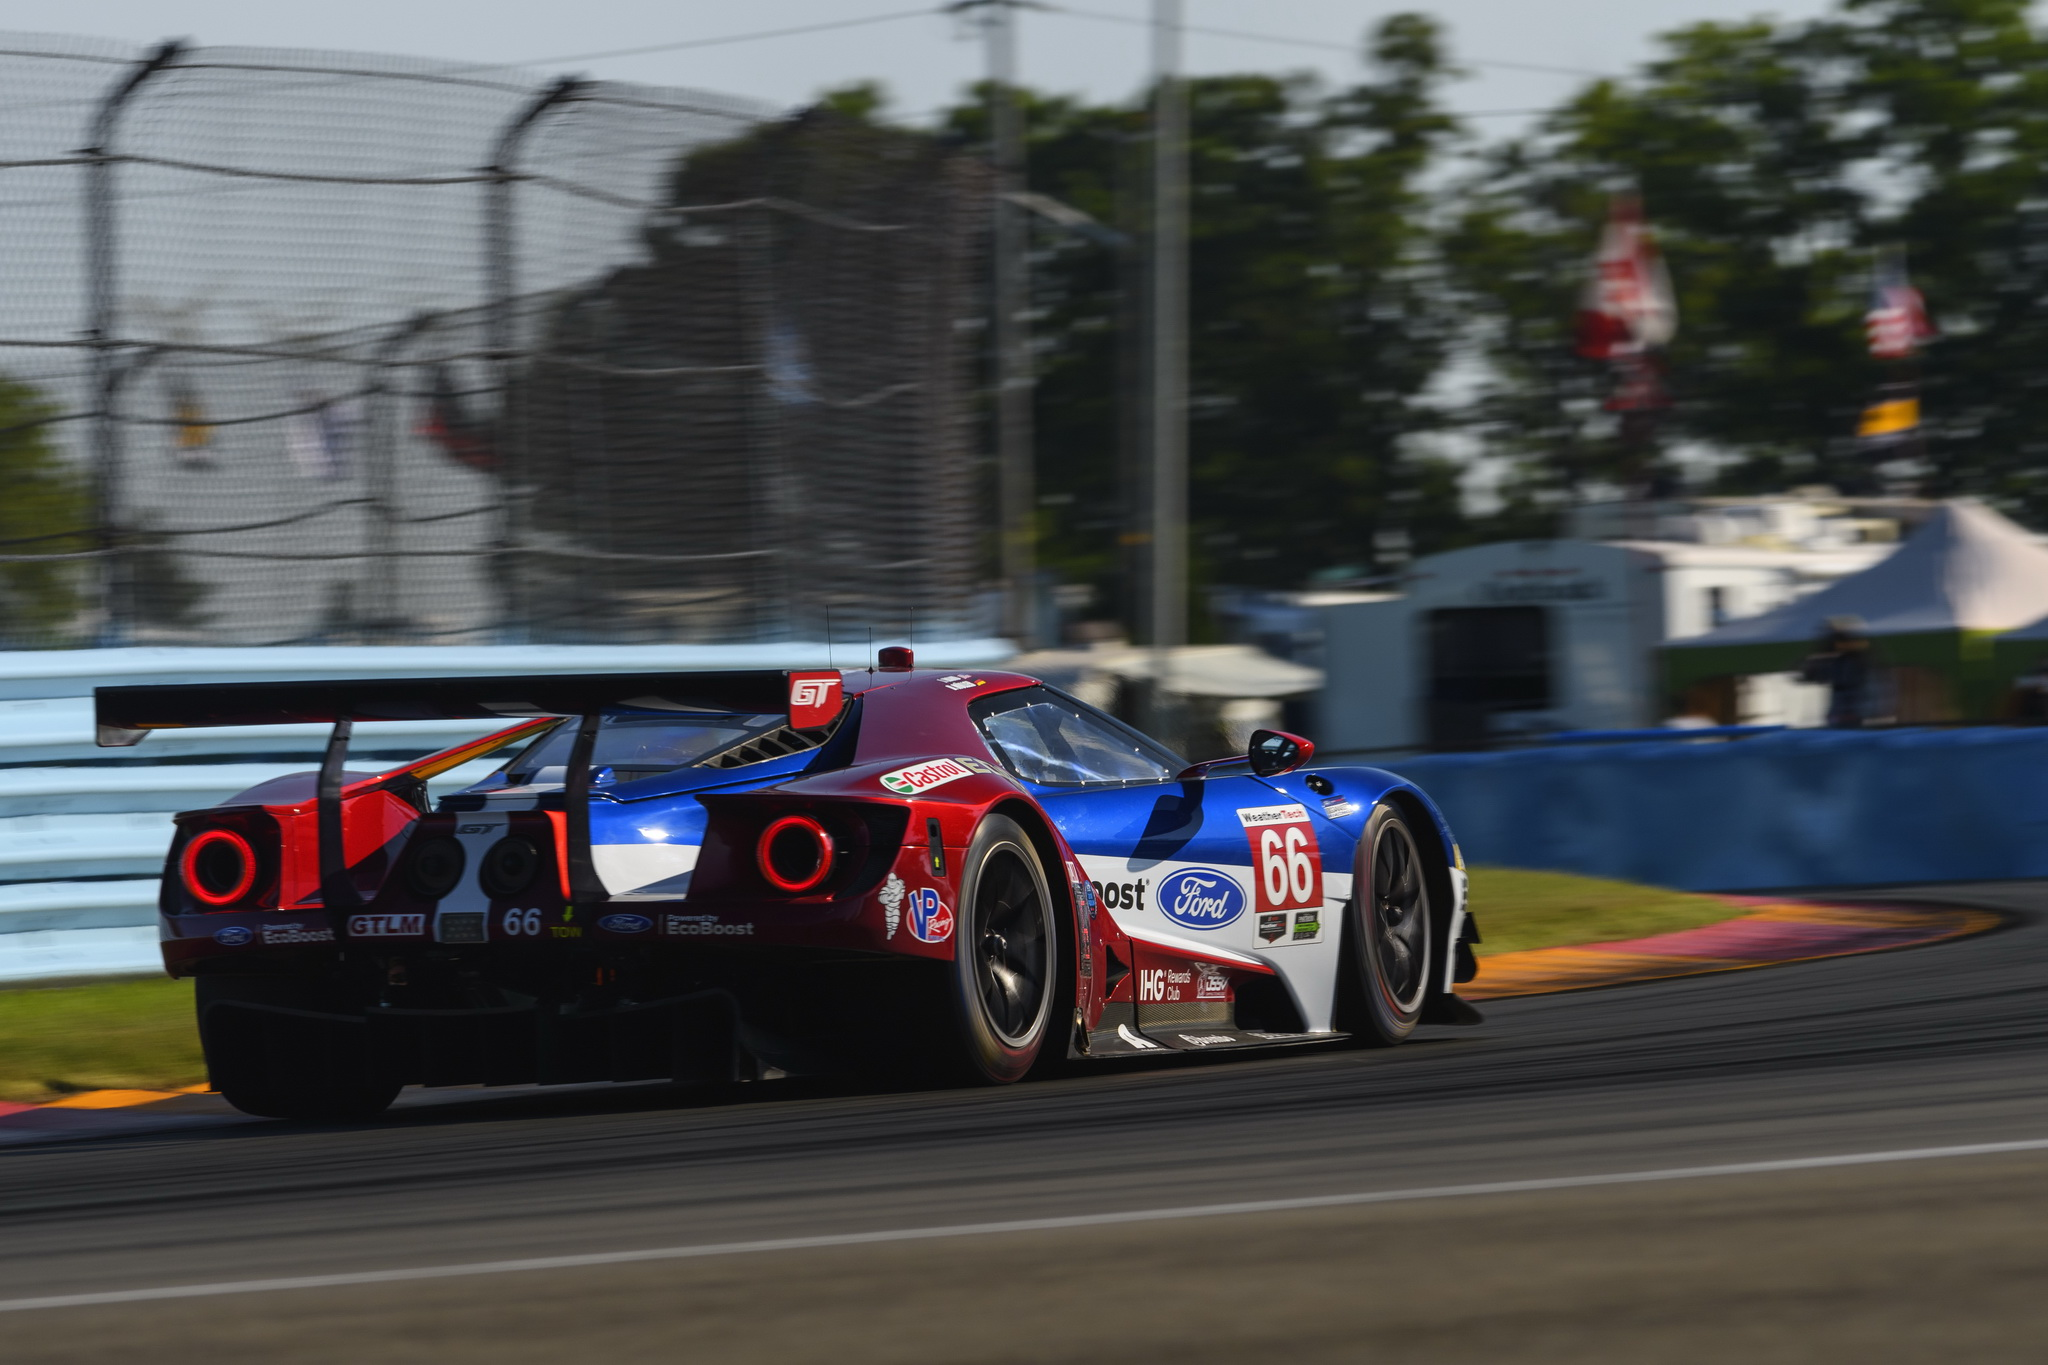 Ford Chip Ganassi Racing Enters Mosport with Momentum as Summer Racing Schedule Picks Up